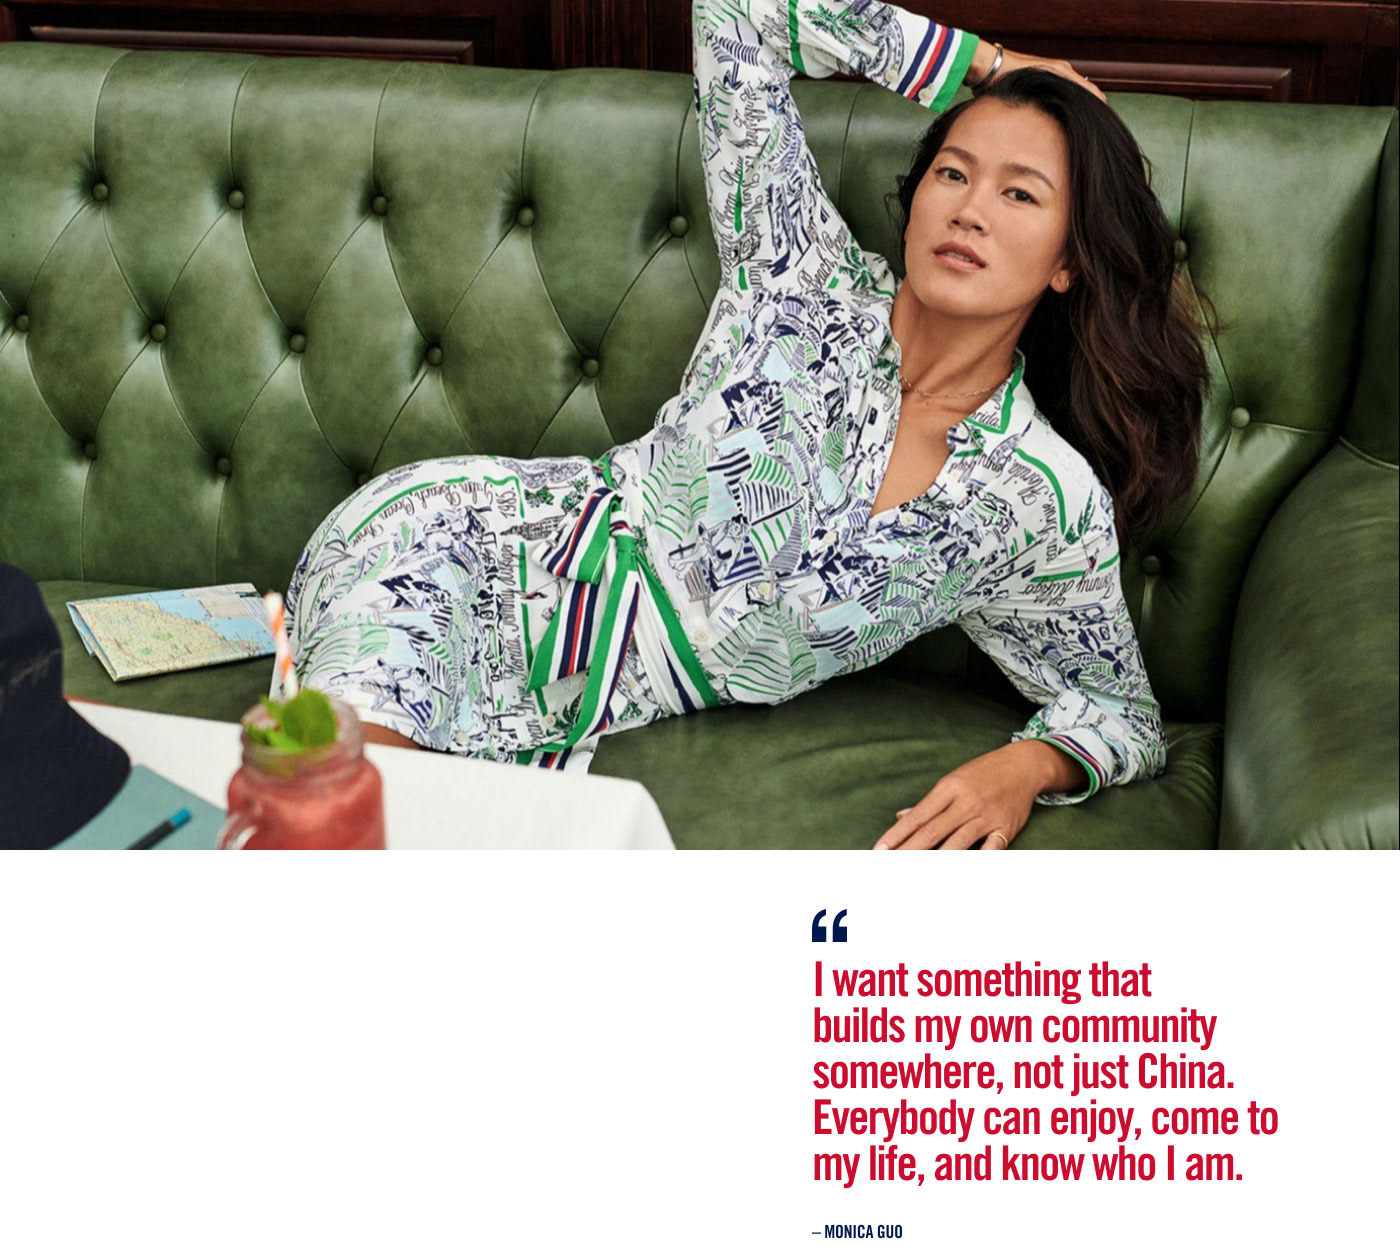 Monica Guo laying on a couch wearing a green crazy patterned dress